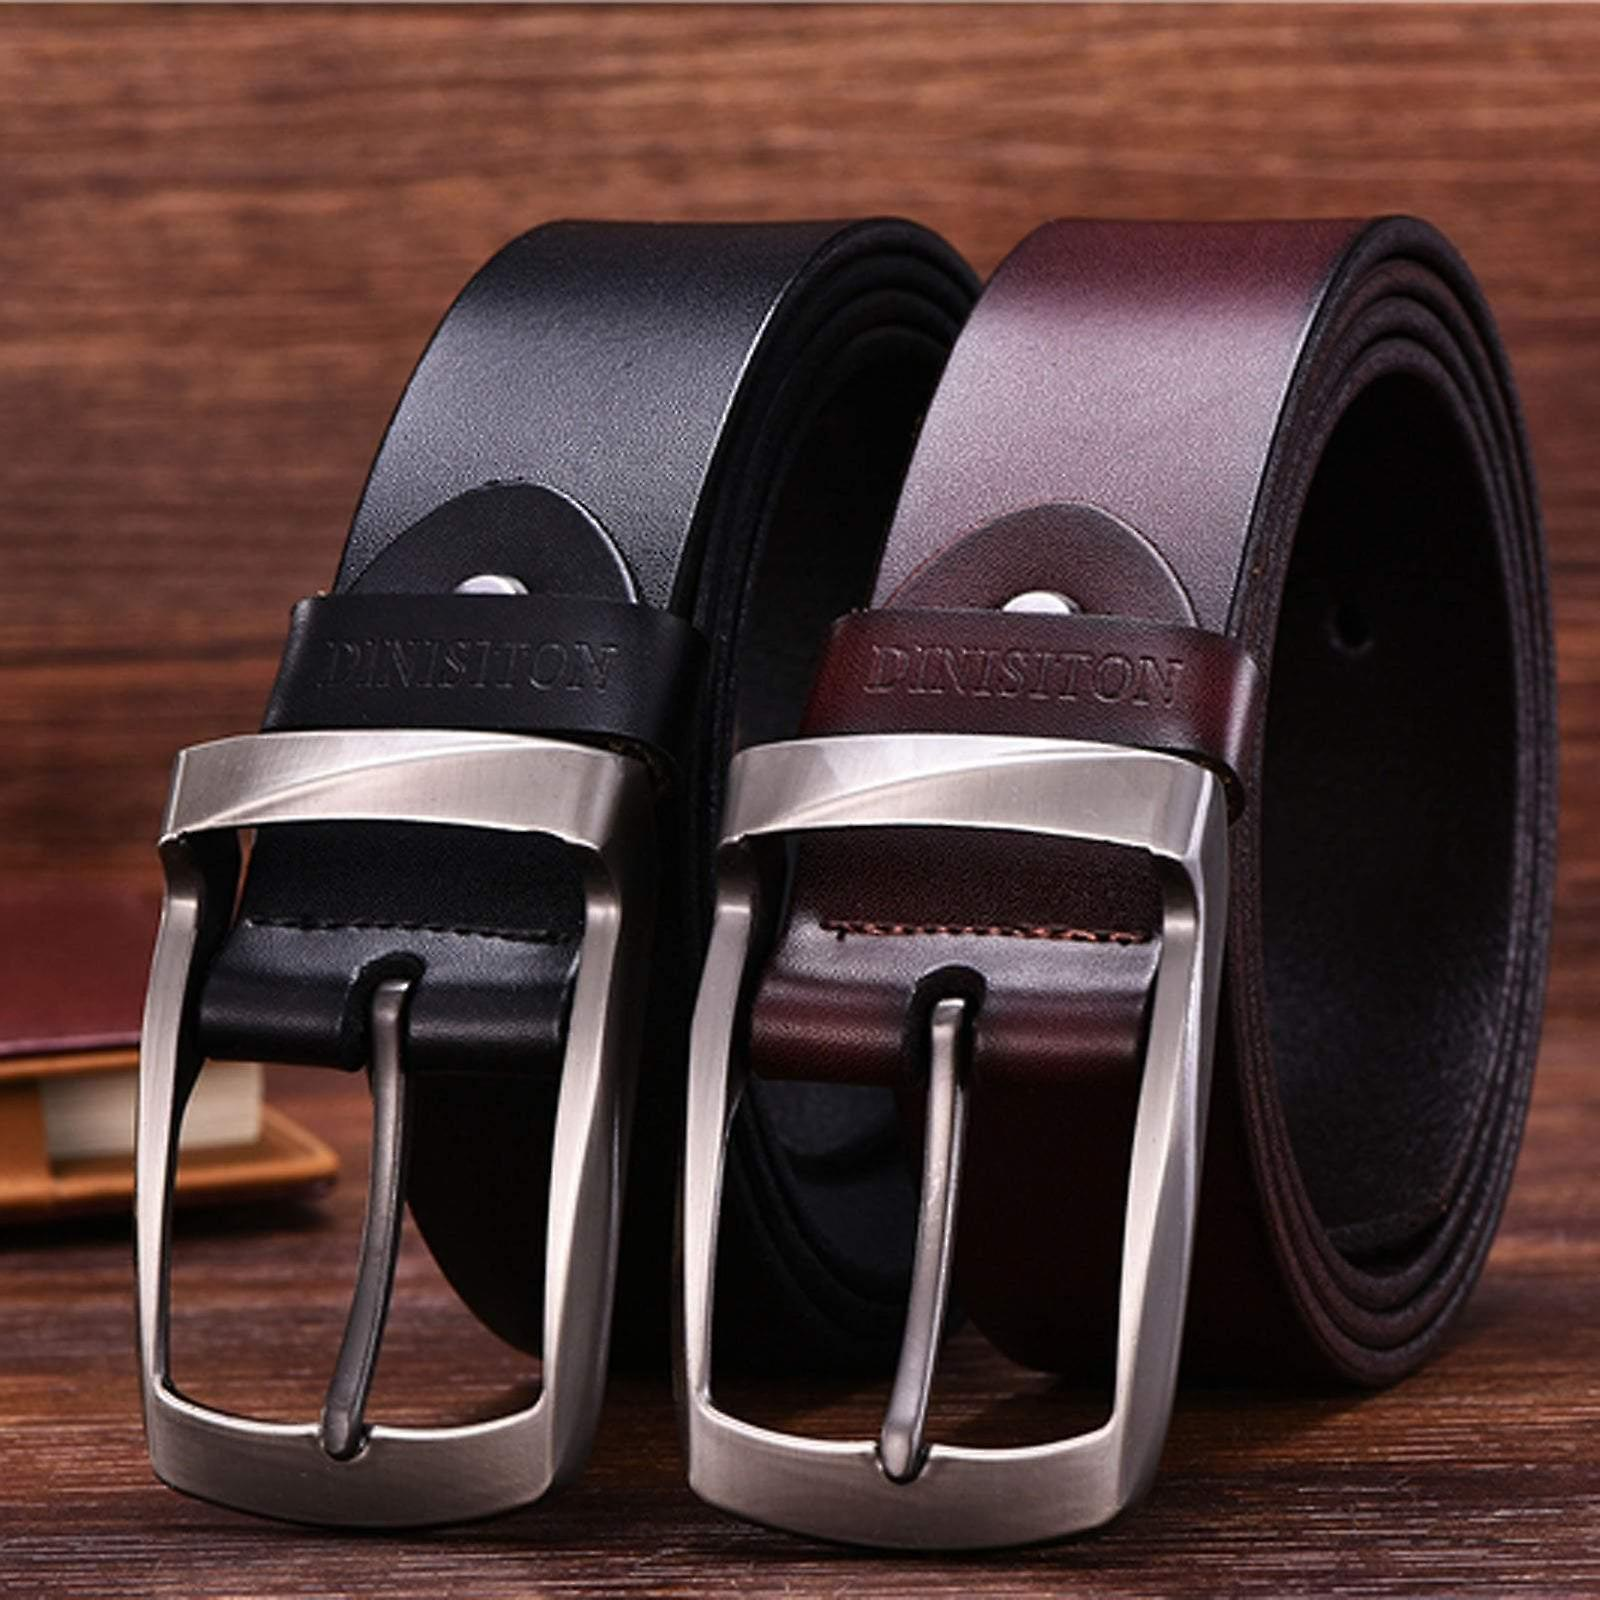 Brown twisted buckle premium leather men's belt 33-36